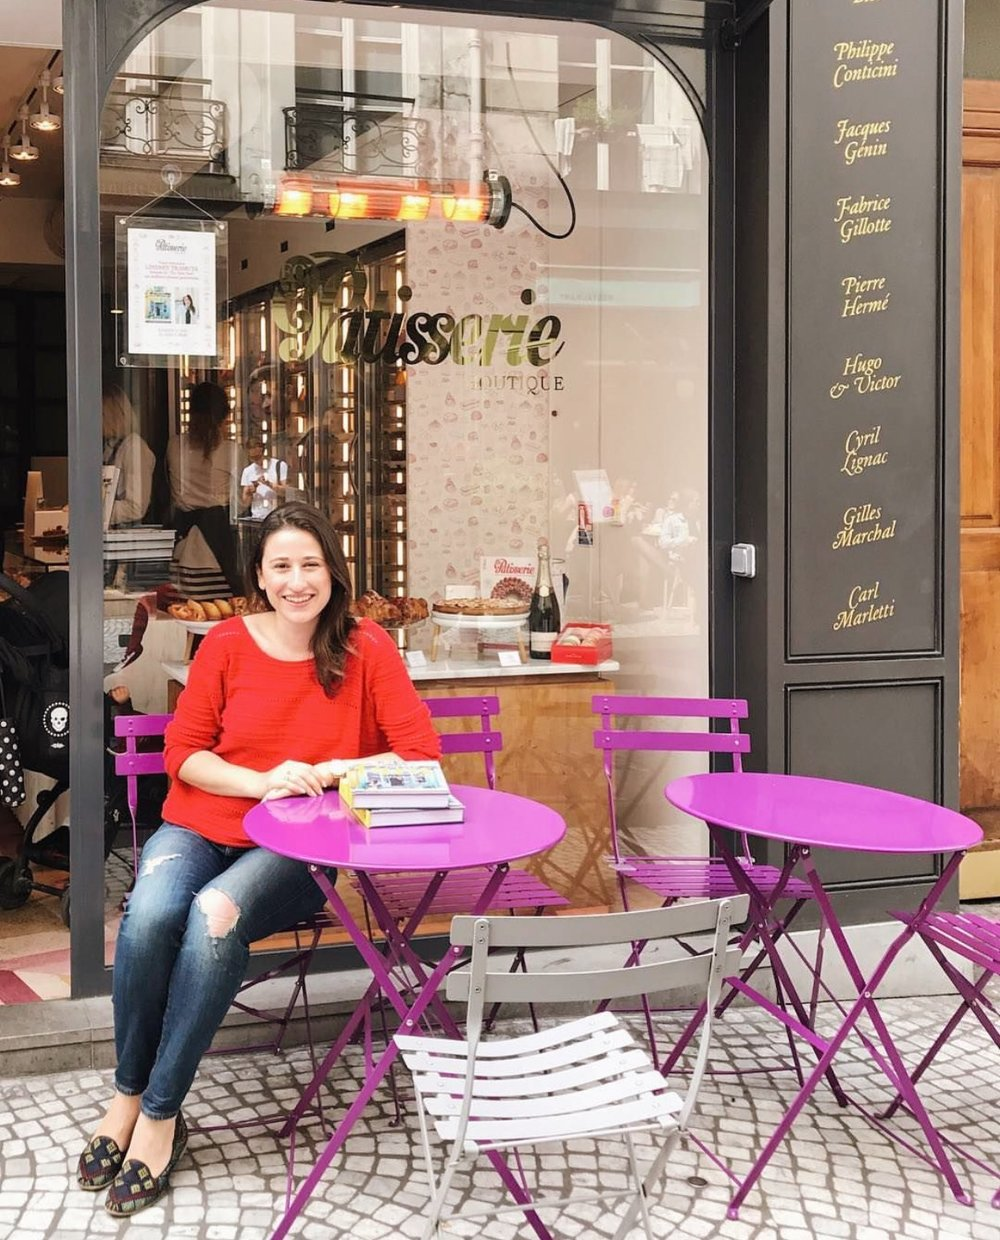 Author Lindsey Tramuta at Fou de Patisserie.Learn more about Lindsey on  Instagram  and her blog,  lostincheeseland.com .